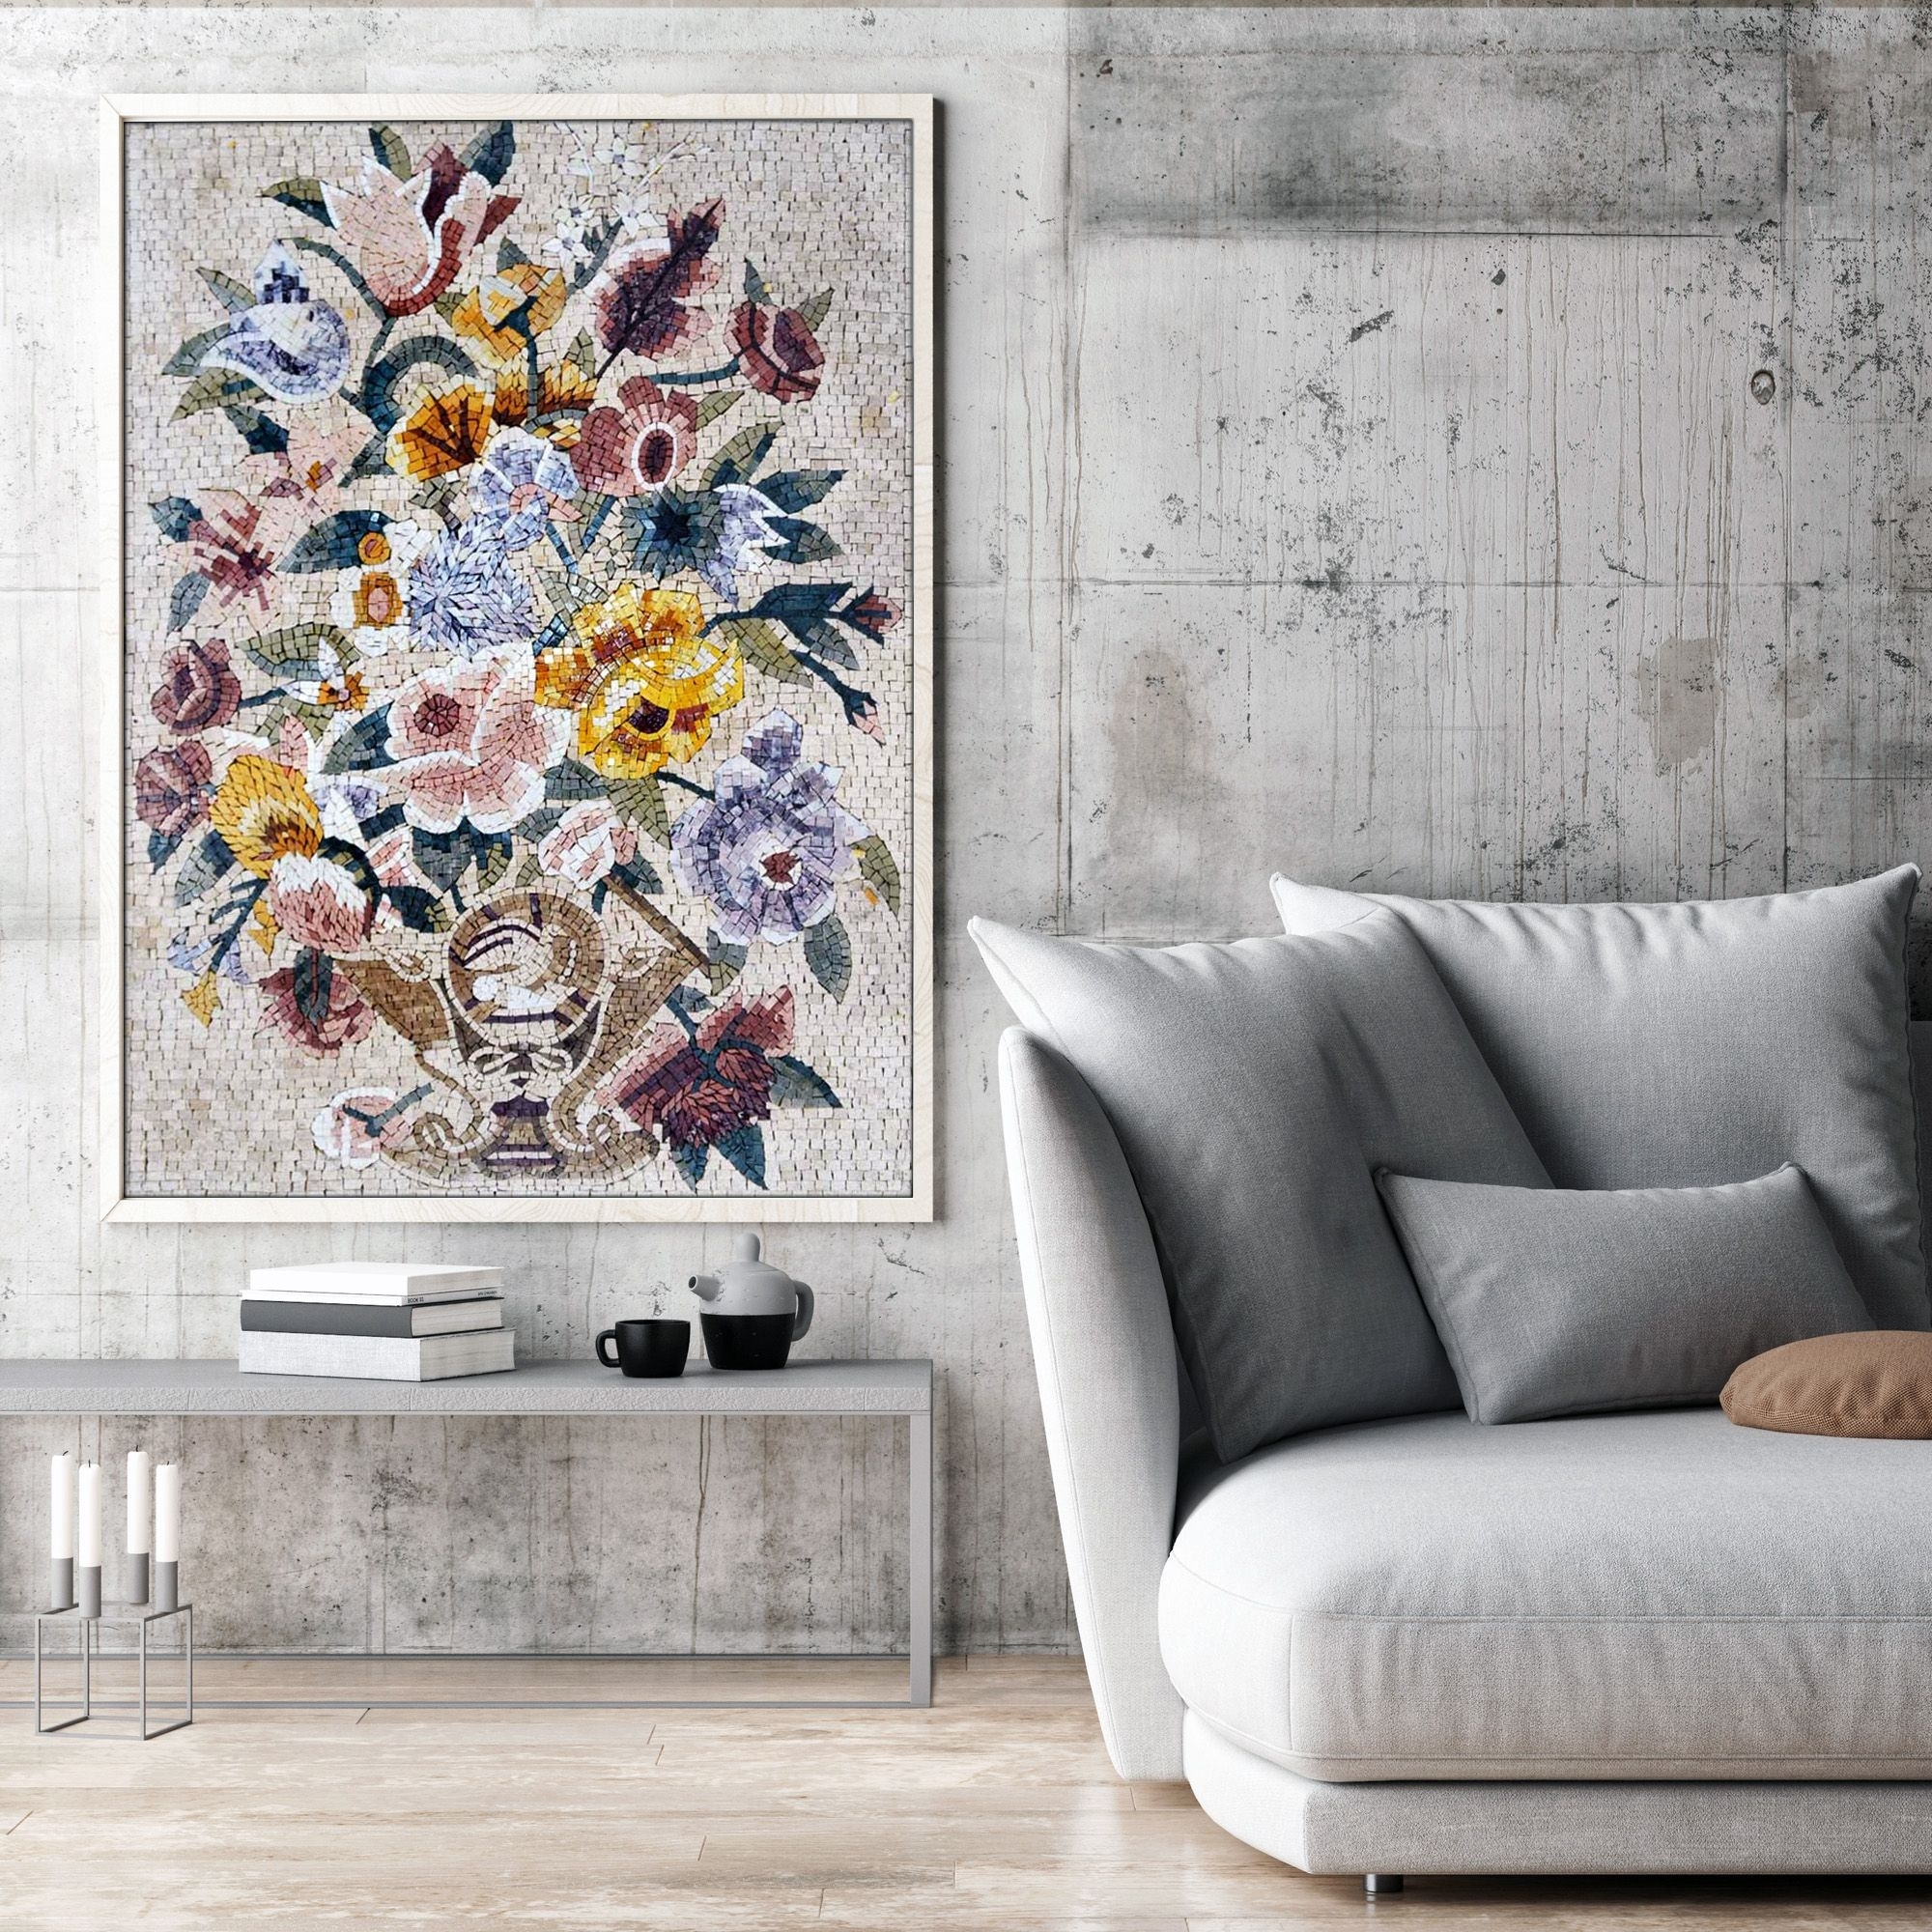 Unique Ways To Decorate Your Home With Mosaic Wall Art | Mosaic Inside Mosaic Wall Art (View 17 of 20)